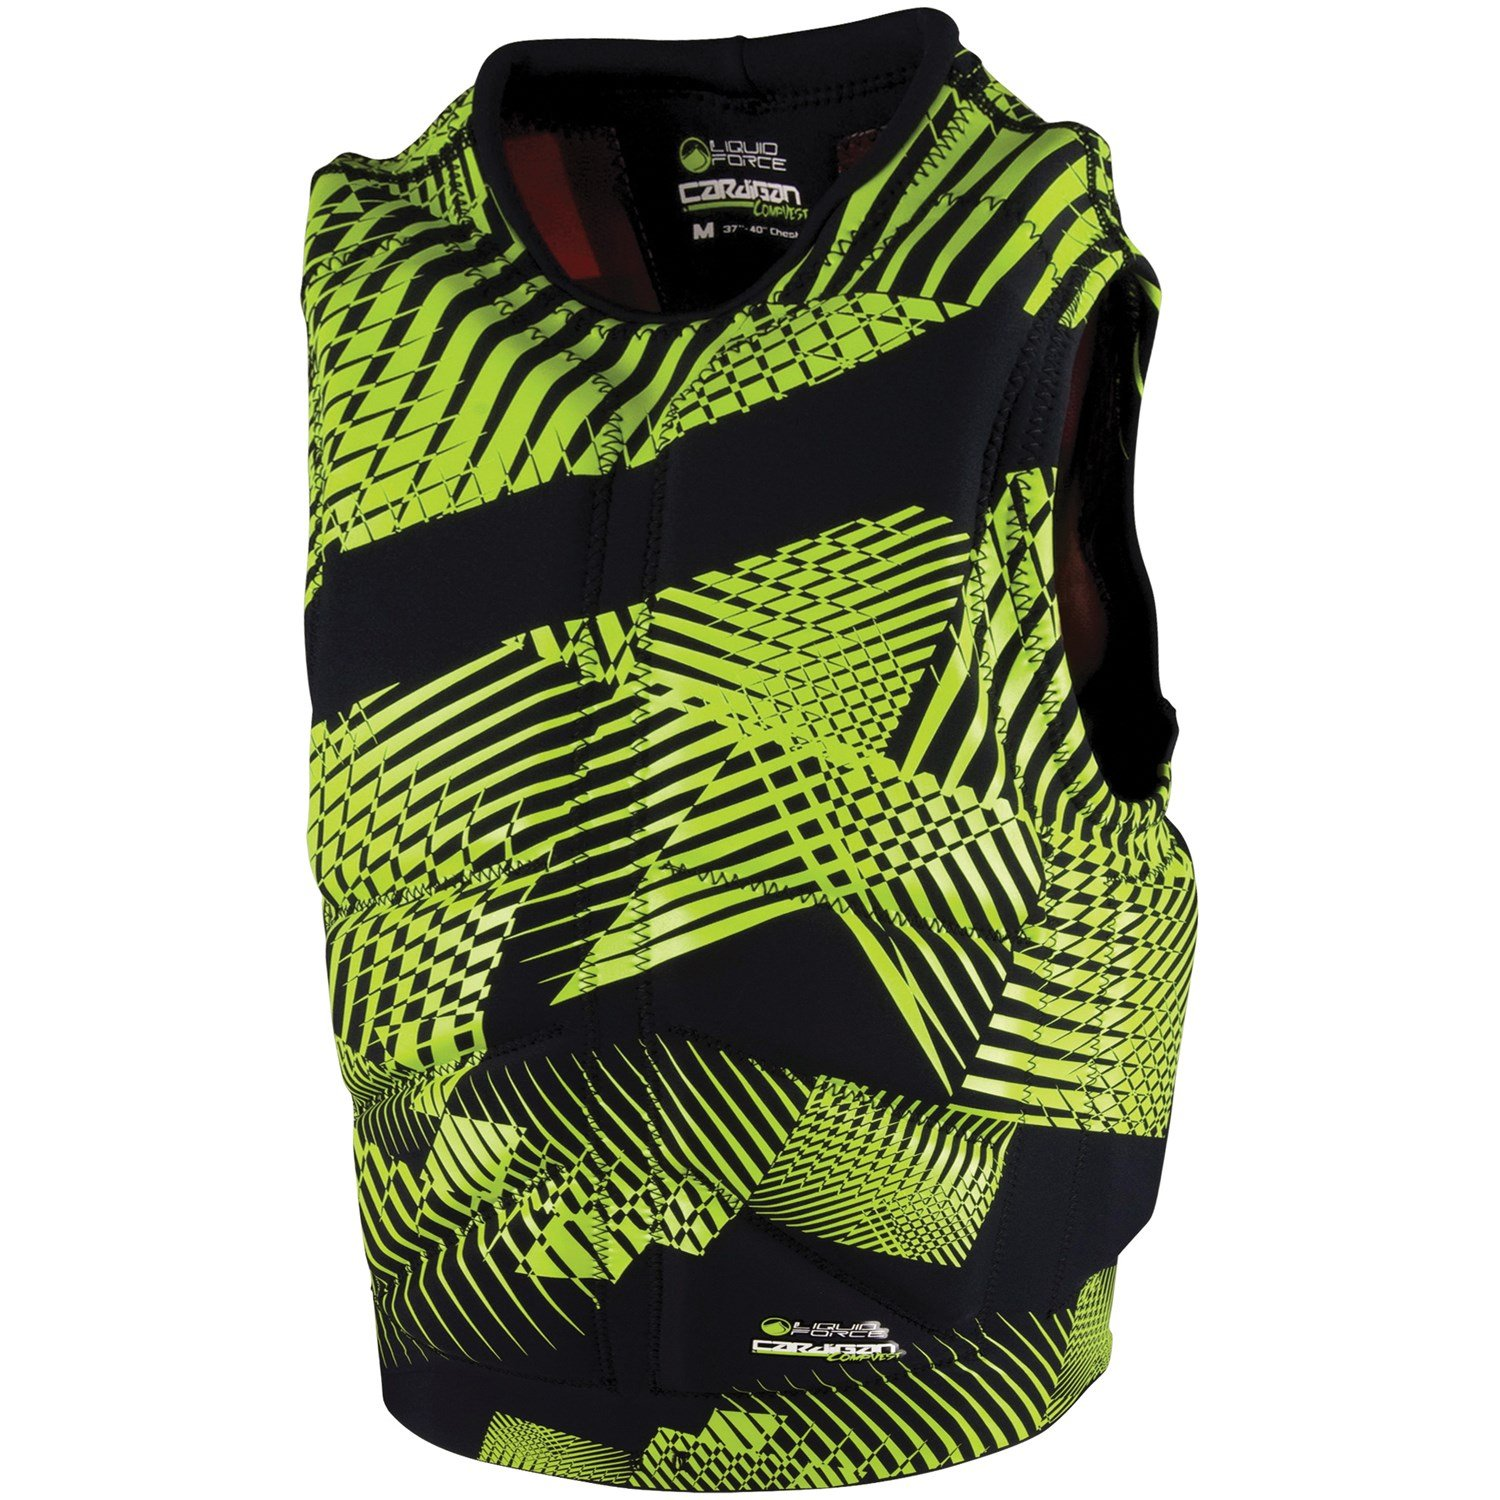 Liquid Force Cardigan Comp Wakeboard Vest 2011 | evo